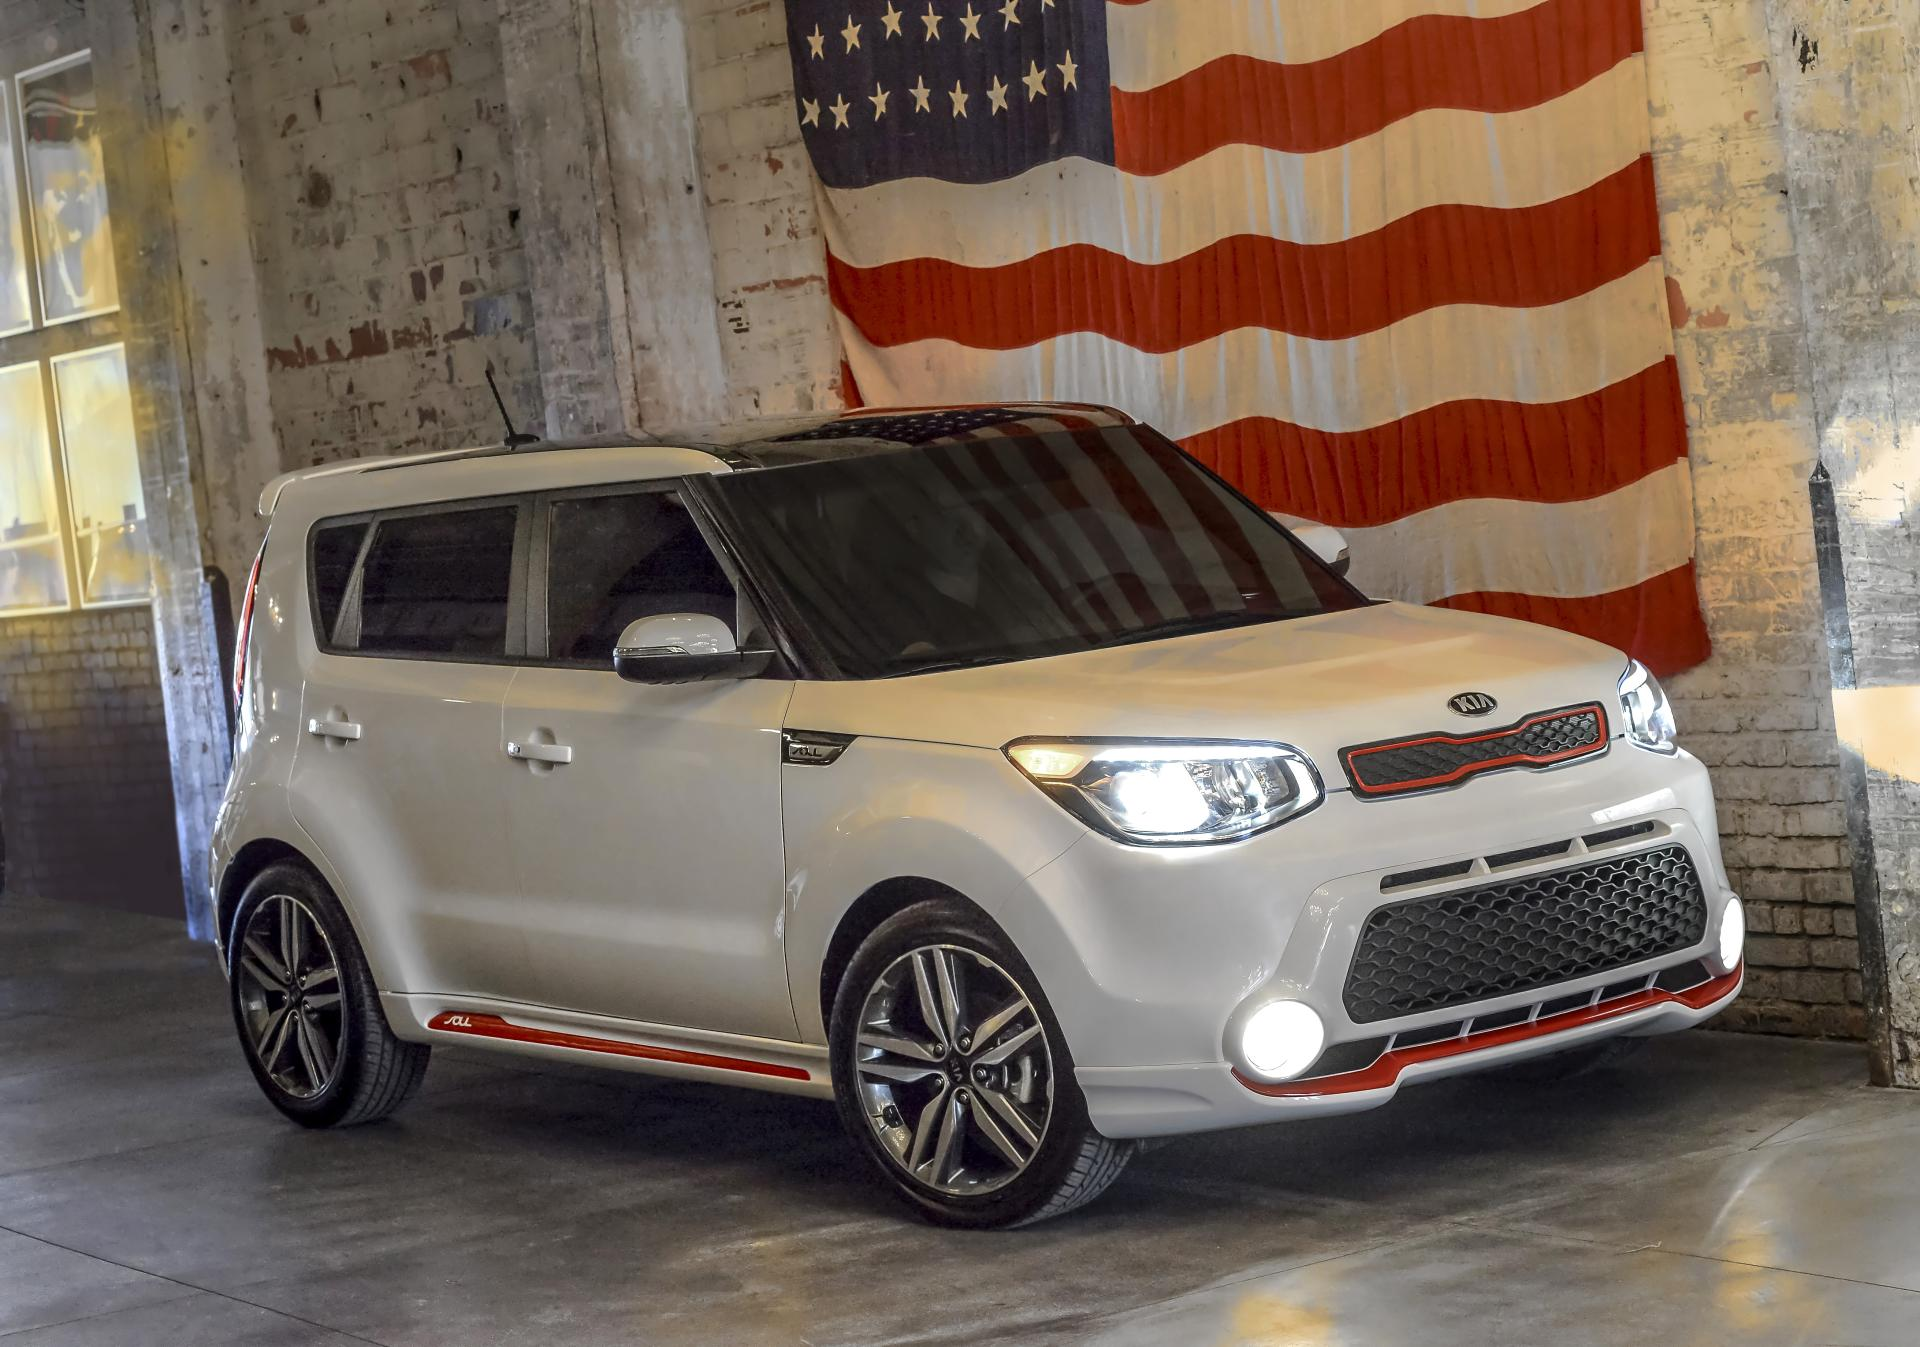 2014 Kia Soul Red Zone Edition Technical Specifications and Data